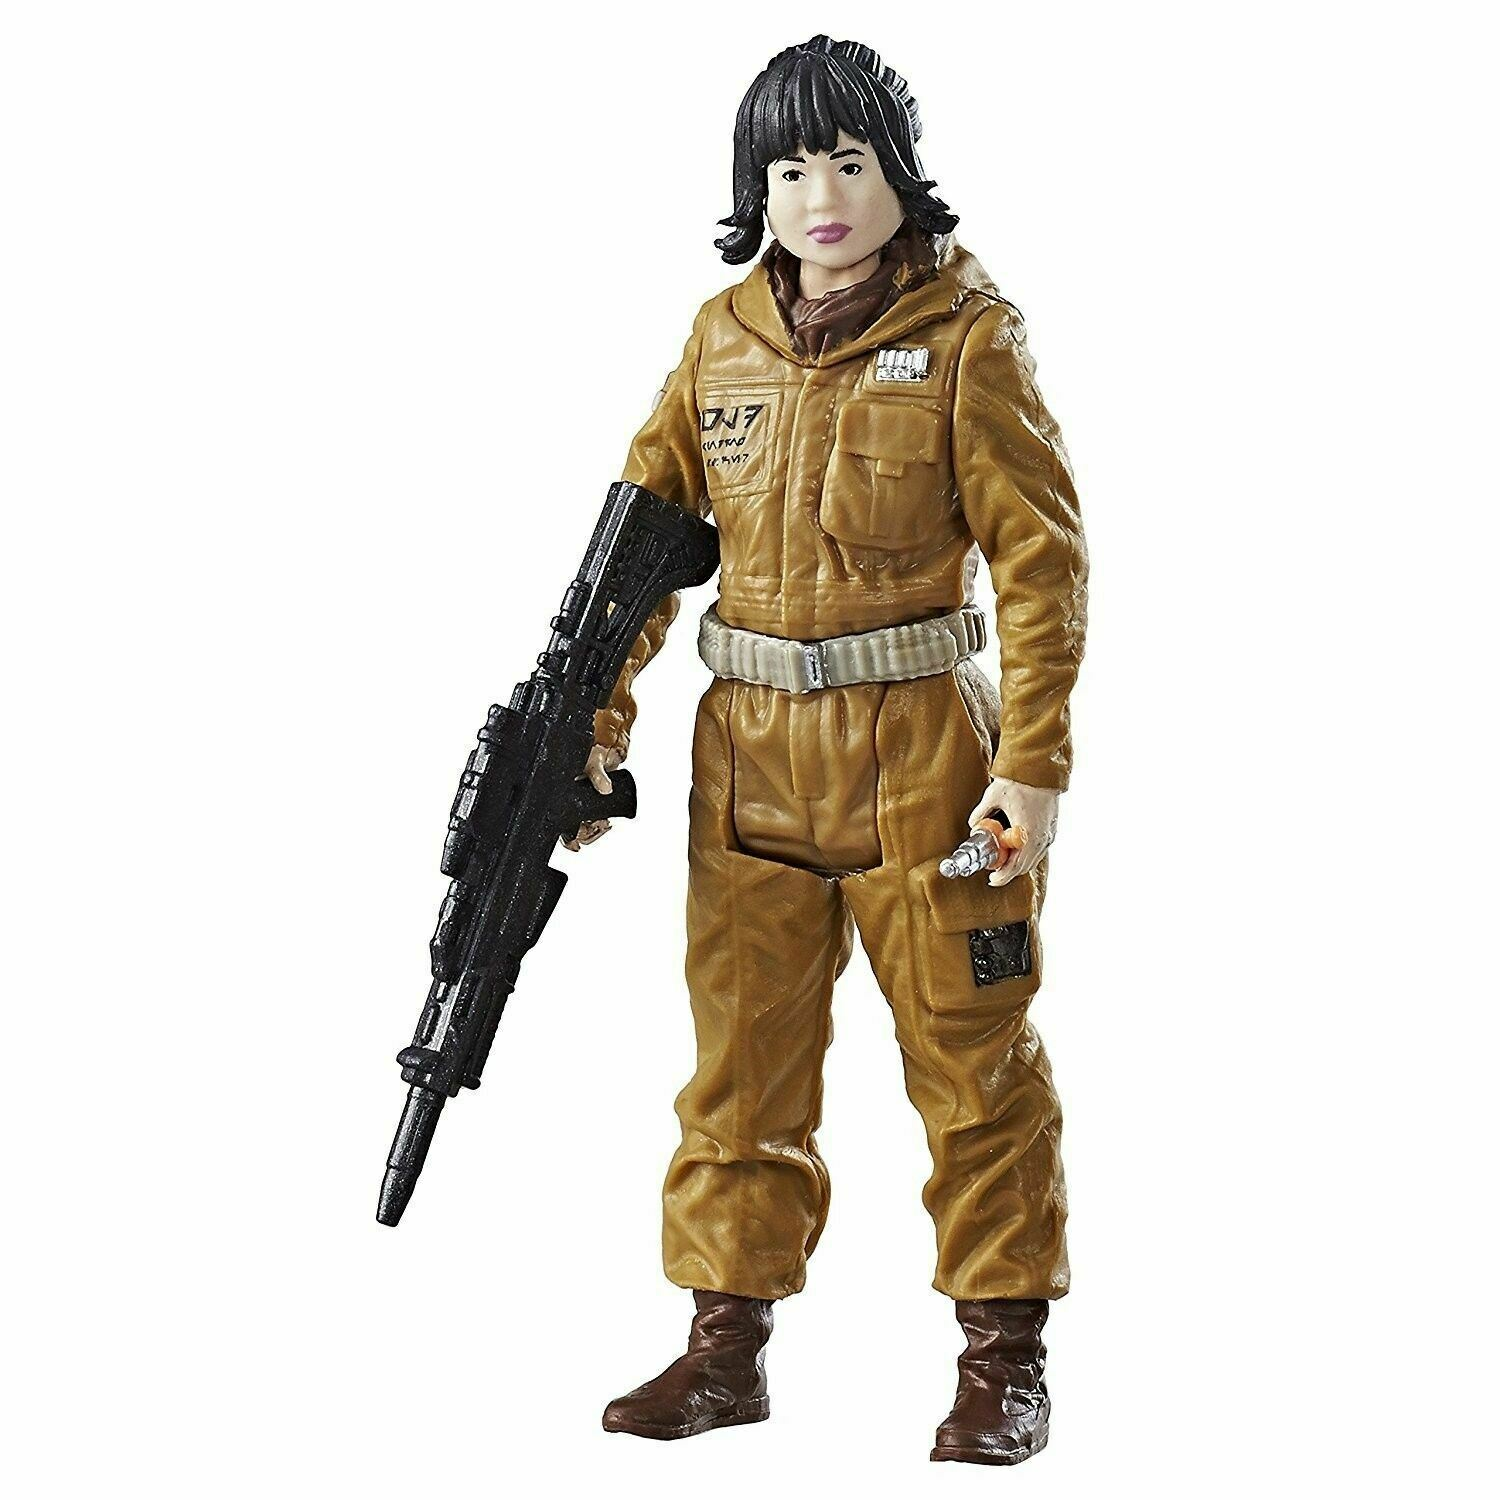 Figurine StarWars : Hasbro Star Wars The Last Jedi Resistance Tech Rose Force Link Action Figure